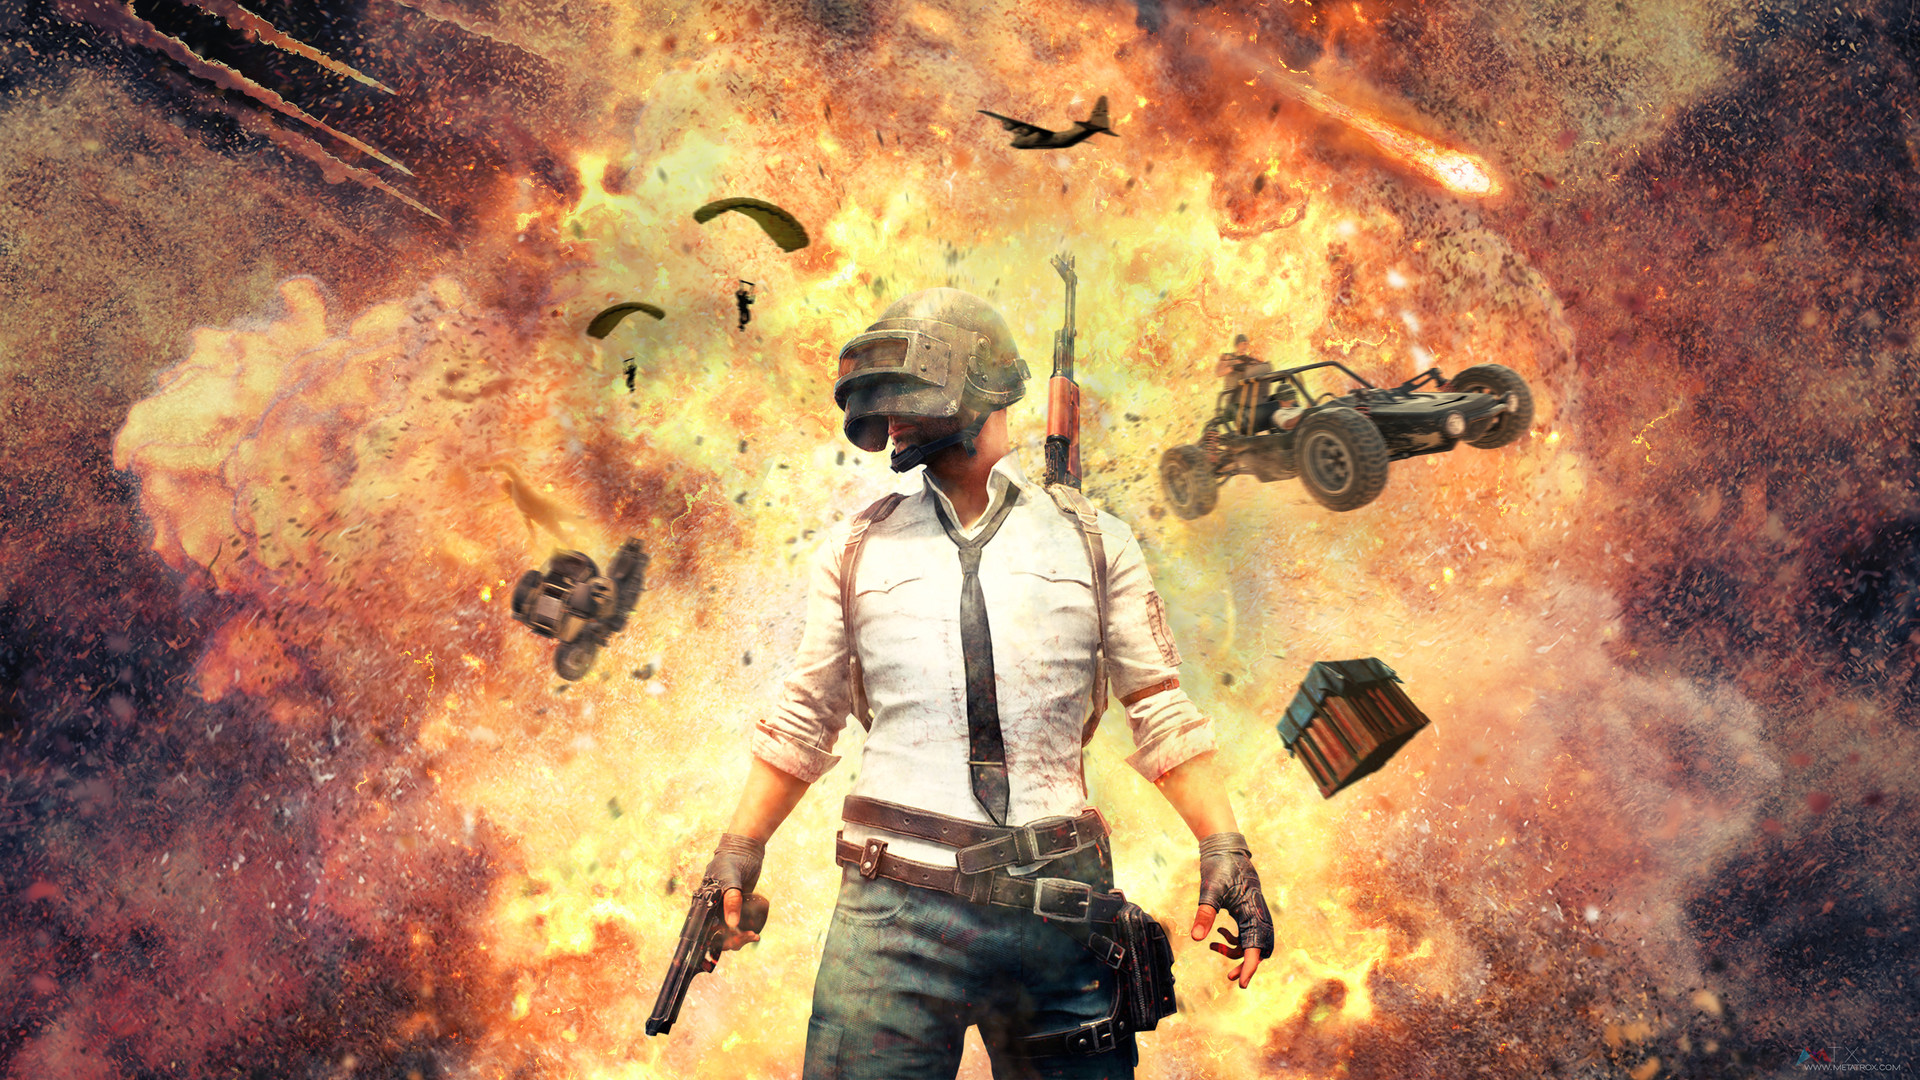 Pubg Ultra Hd Coming Soon: PUBG Wallpapers